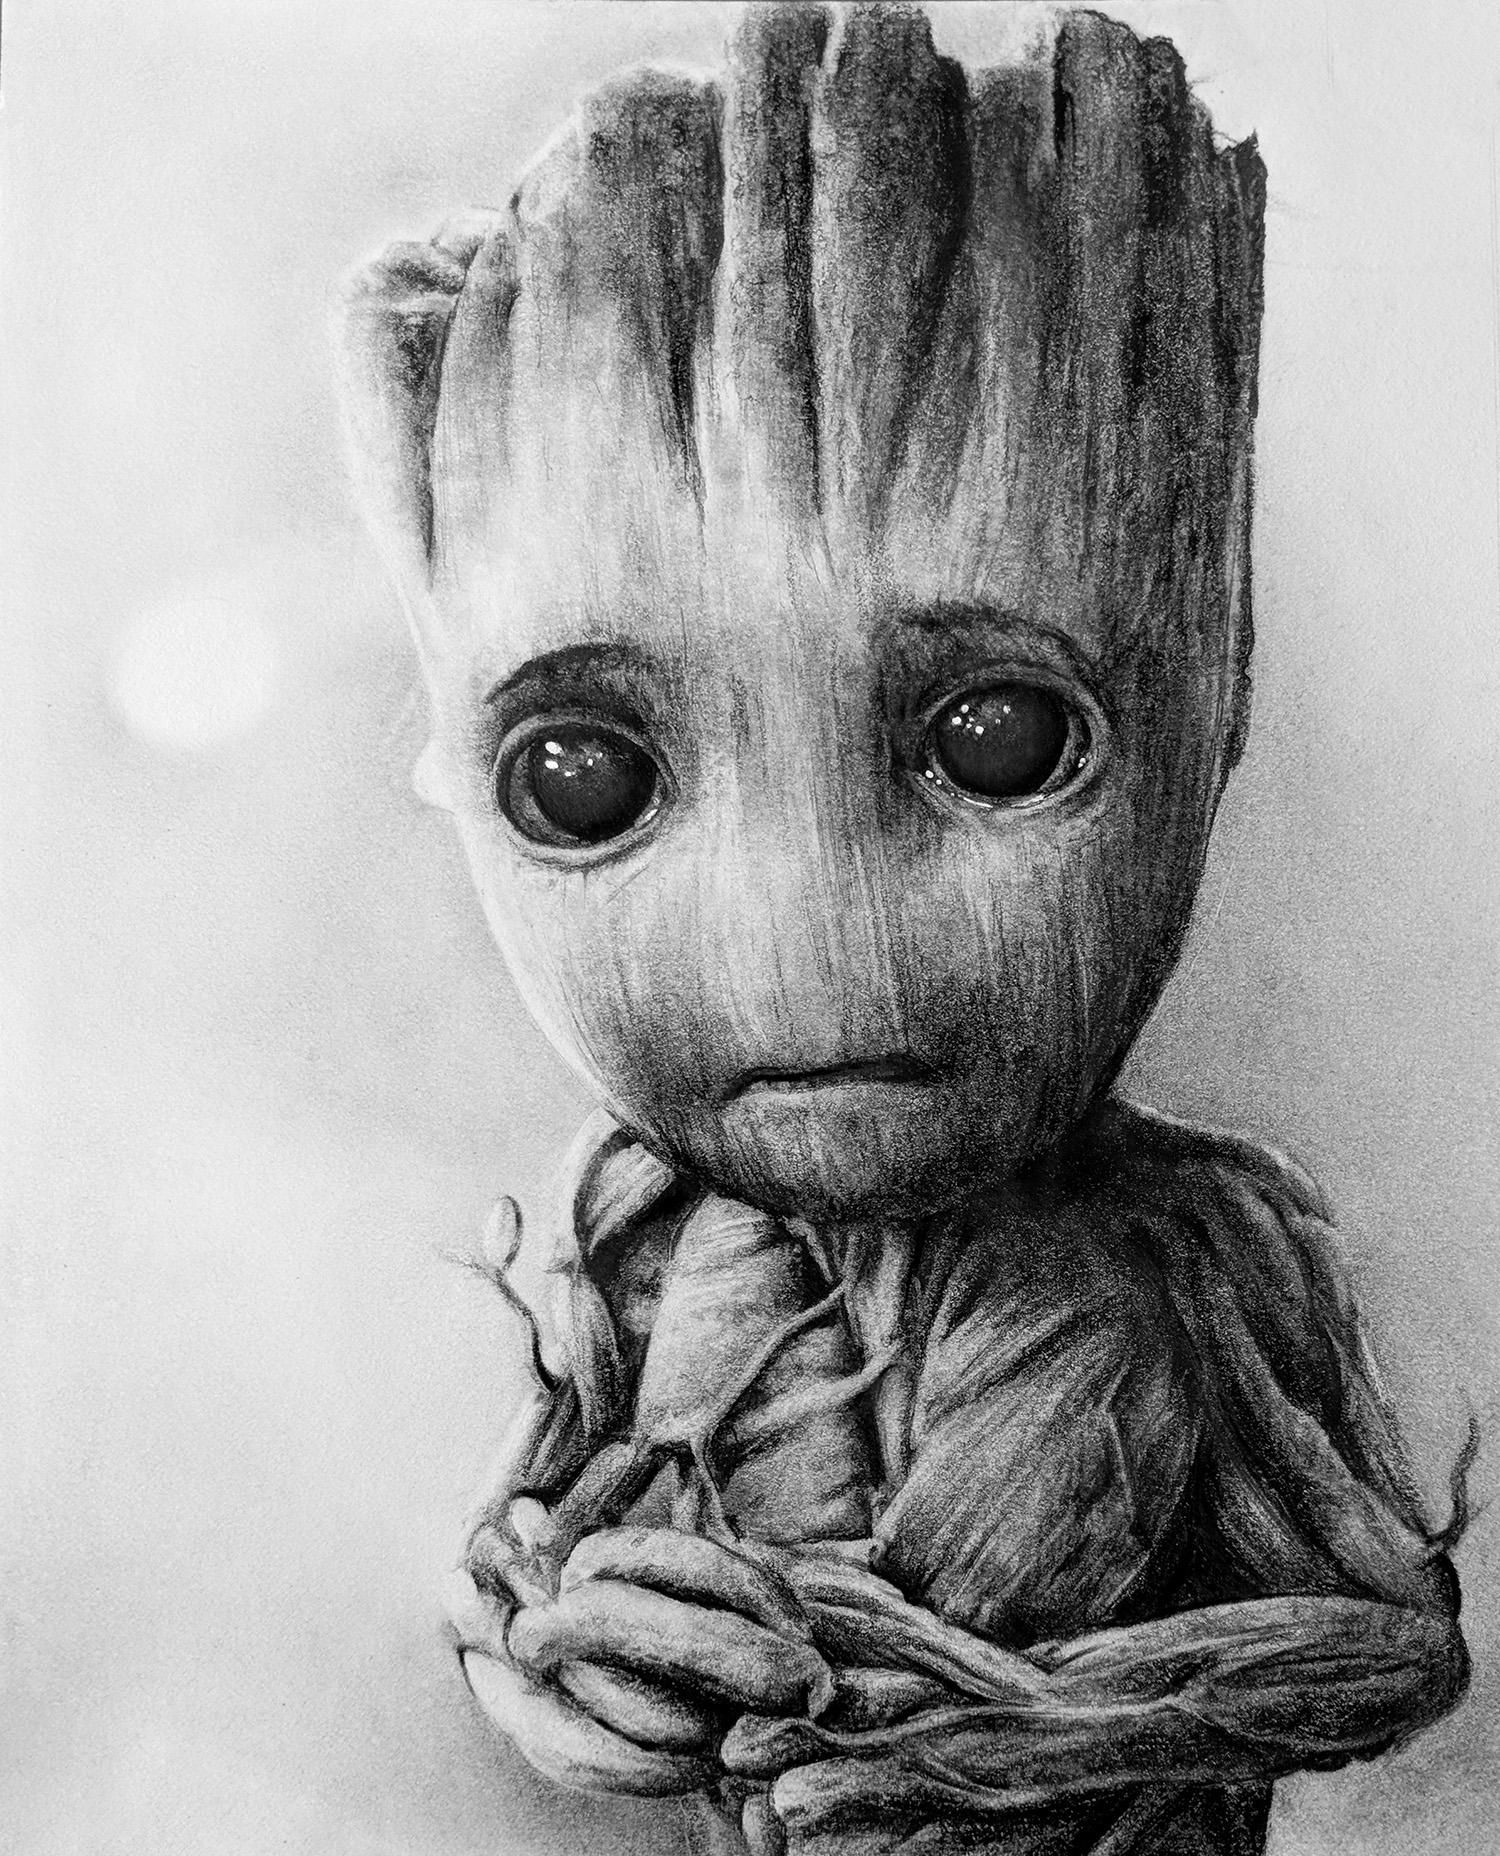 my baby groot - pencil illustration https://ift.tt/2k3JPSS ...